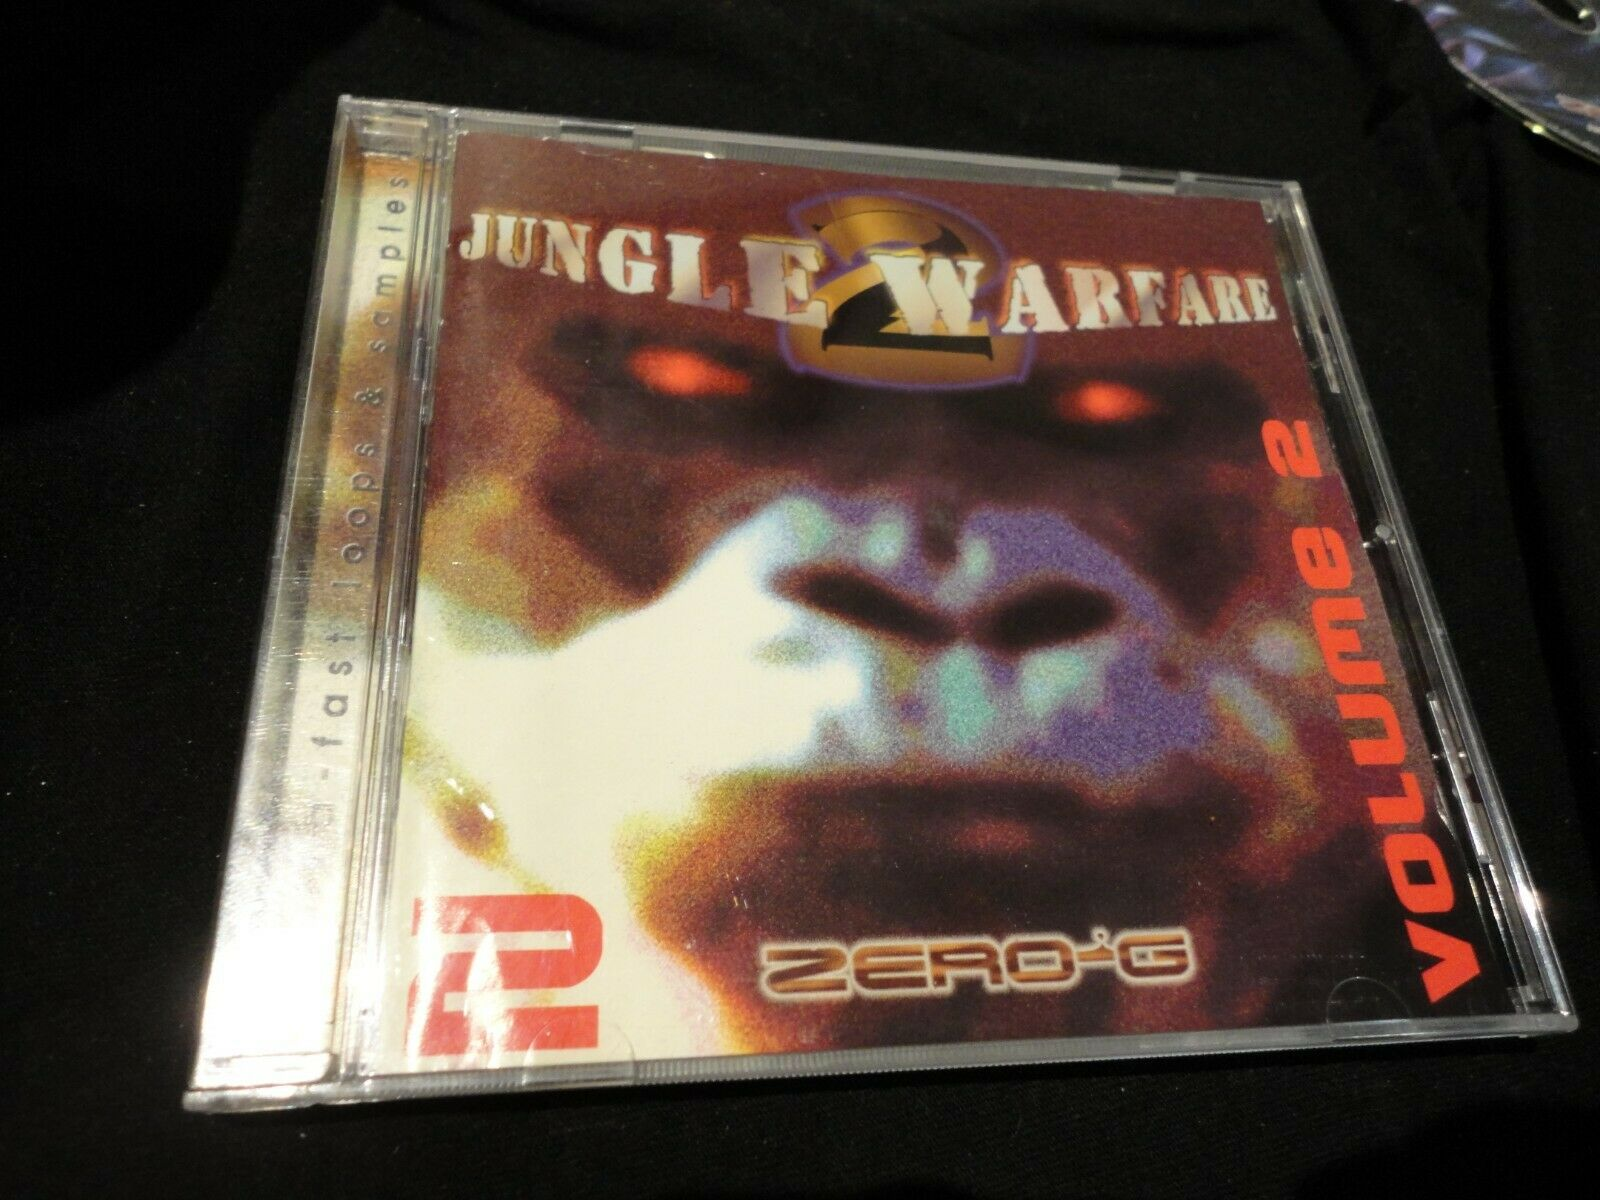 Jungle Warfare Volume 2 - Zero G Audio Sample CD  sampler  East West  Zero G